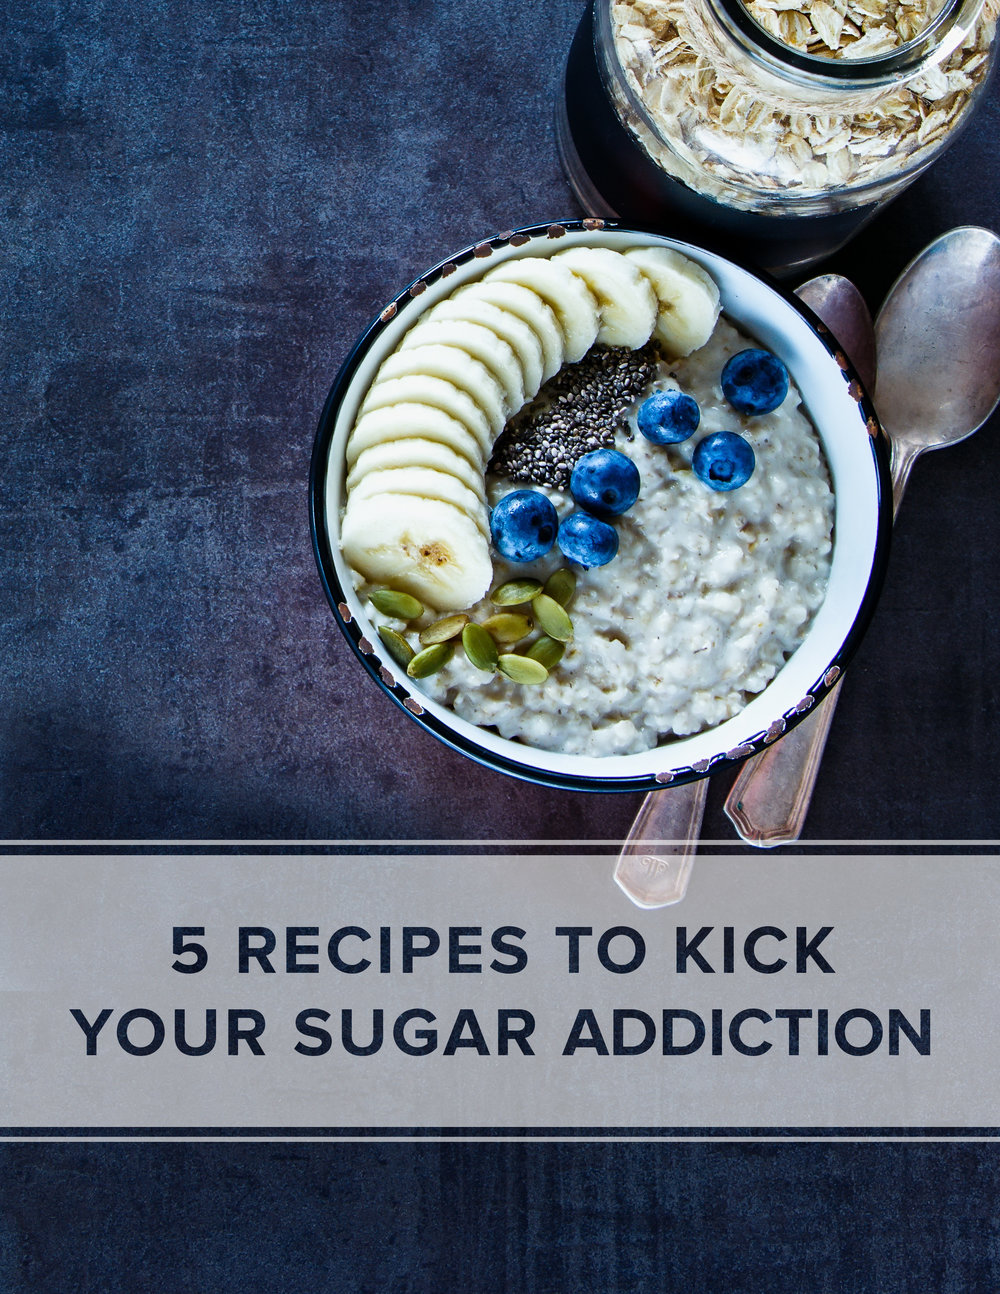 5_Recipes_To_Kick_Your_Sugar_Addiction_2D_cover.jpg